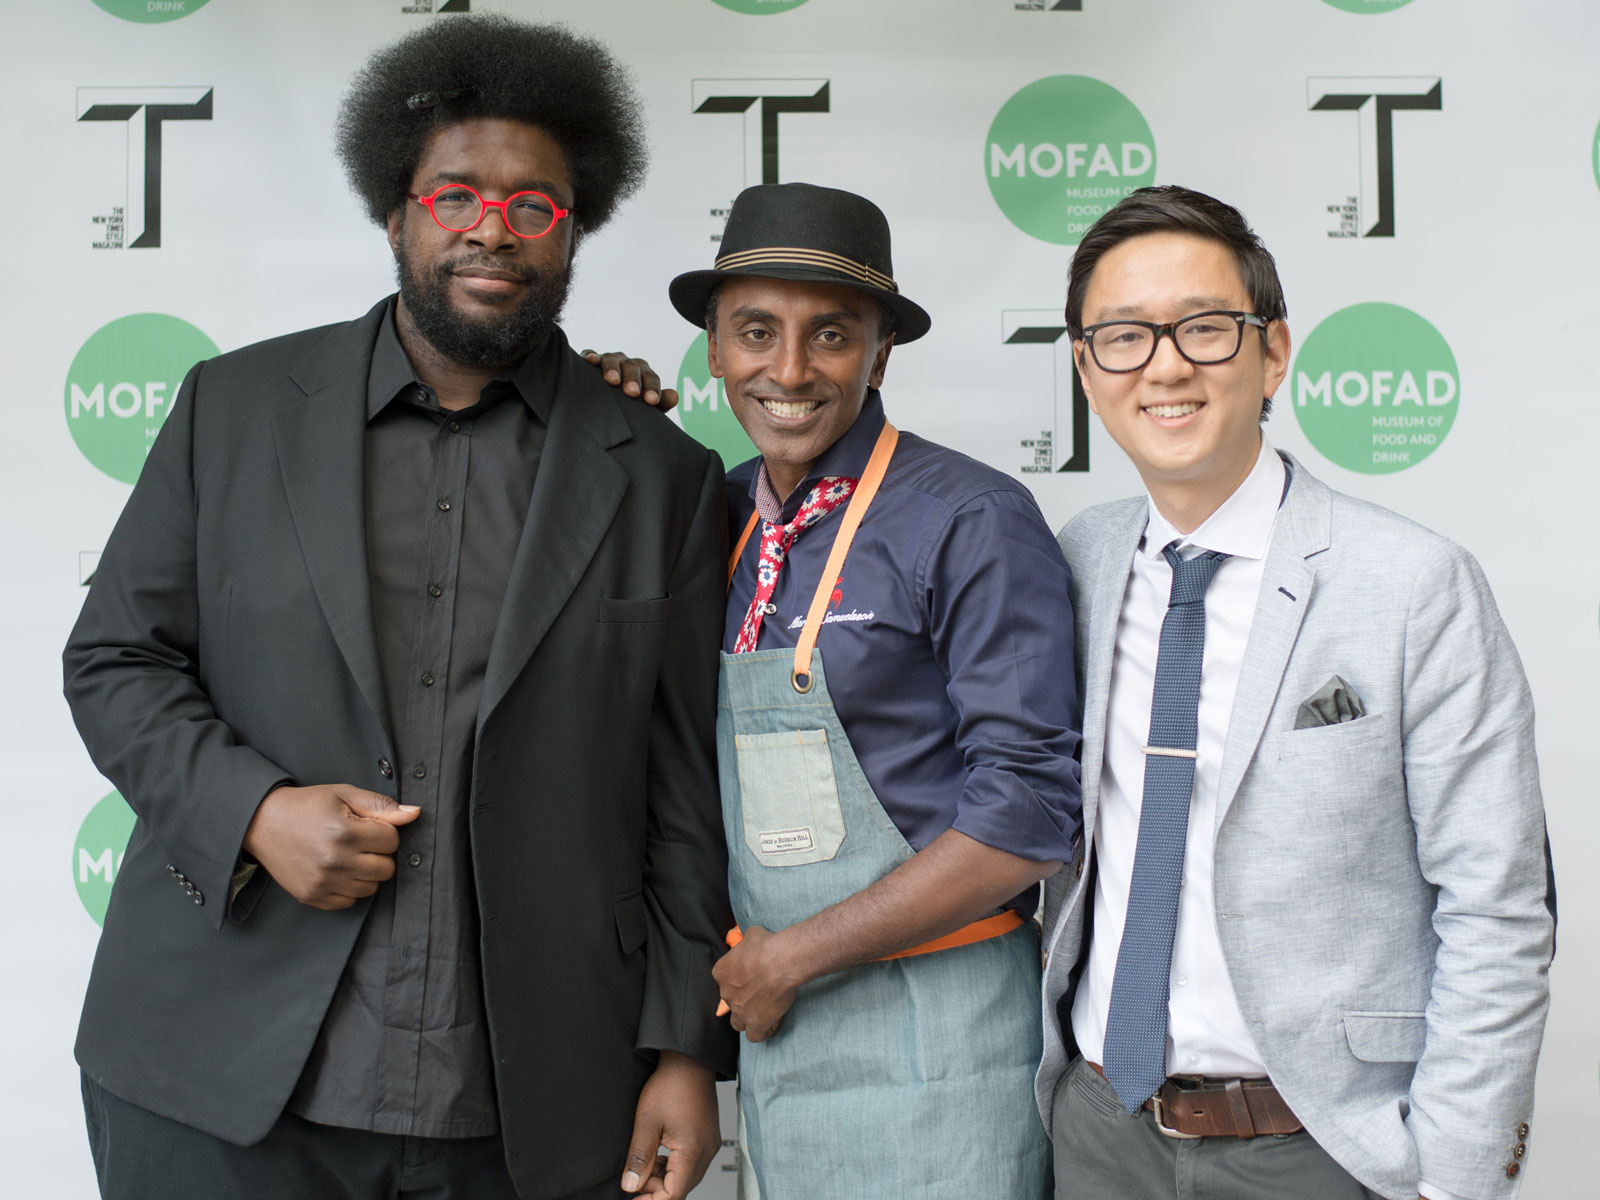 Quest Love Marcus Samuelsson Peter Kim Museum of Food and Drink